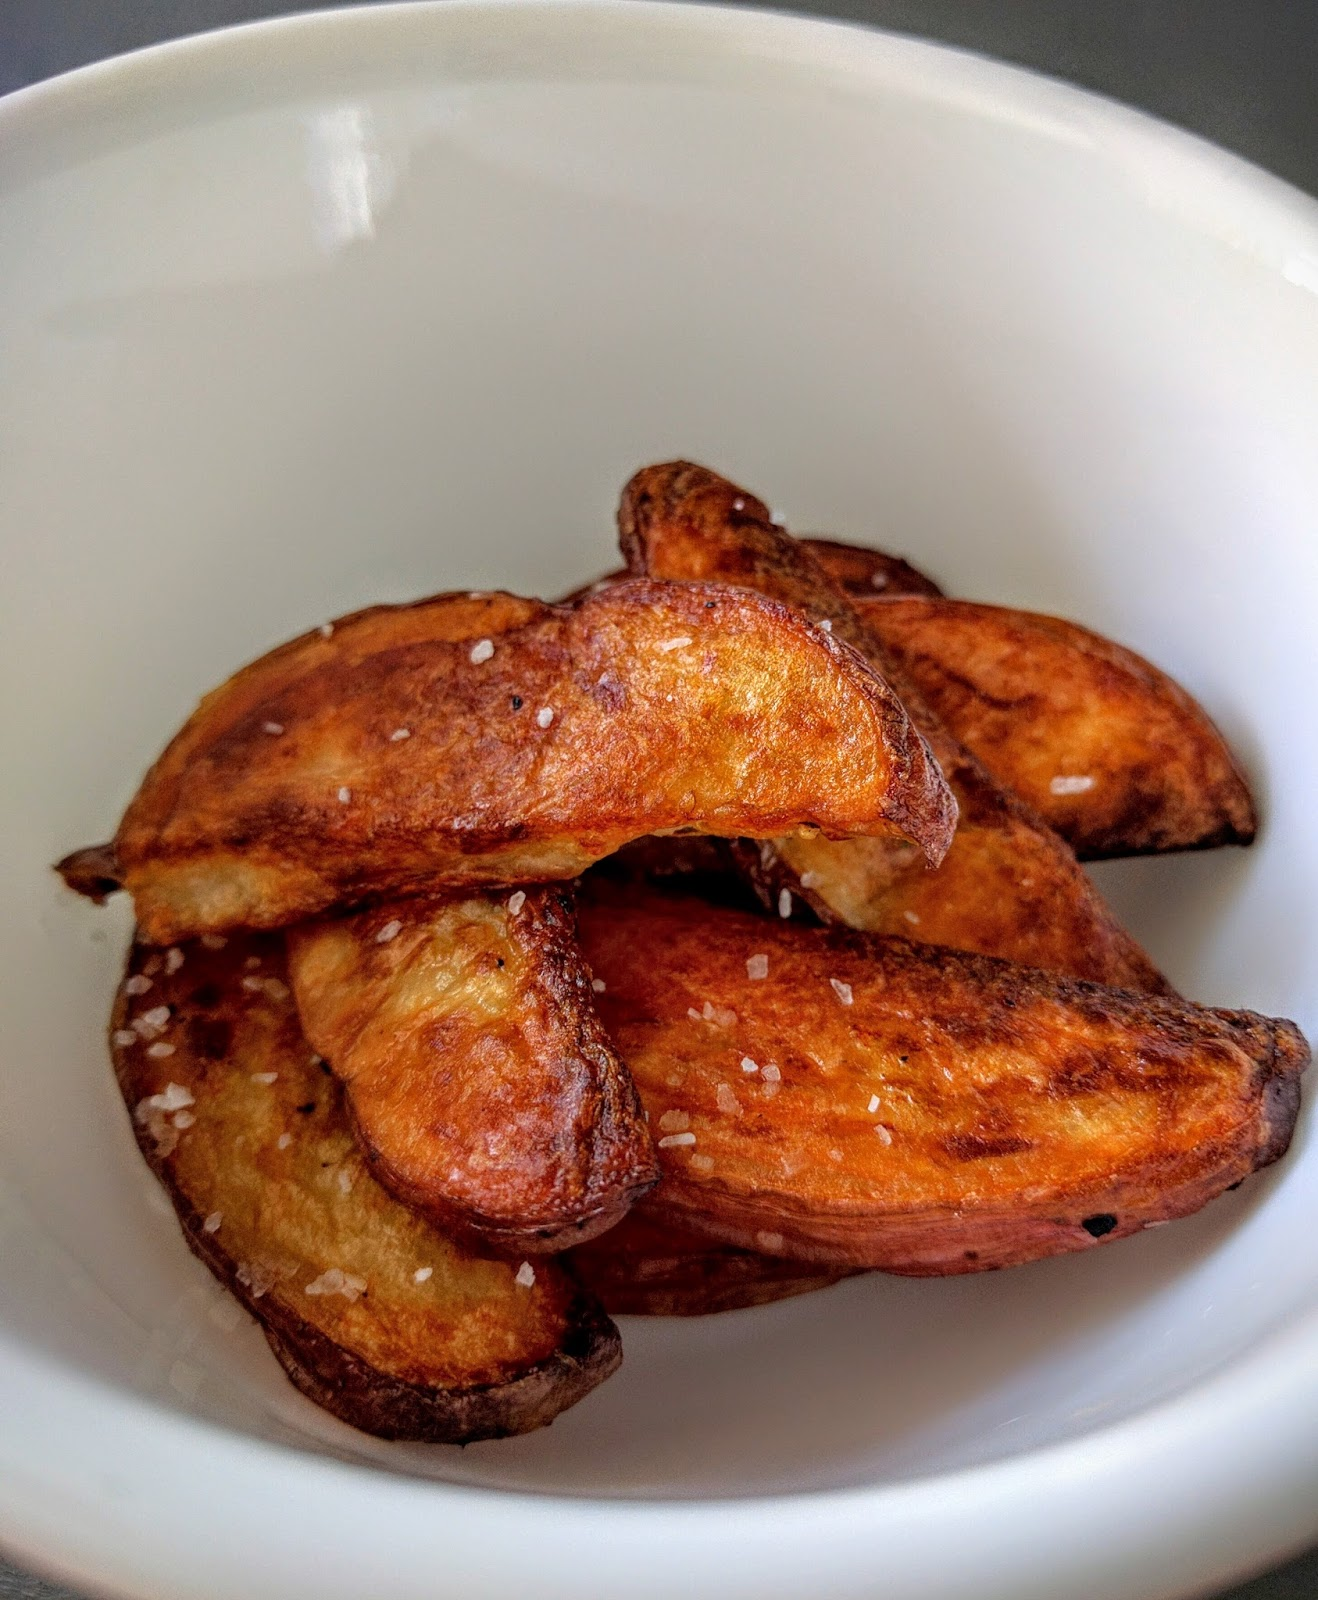 america's test kitchen crispy roasted potatoes